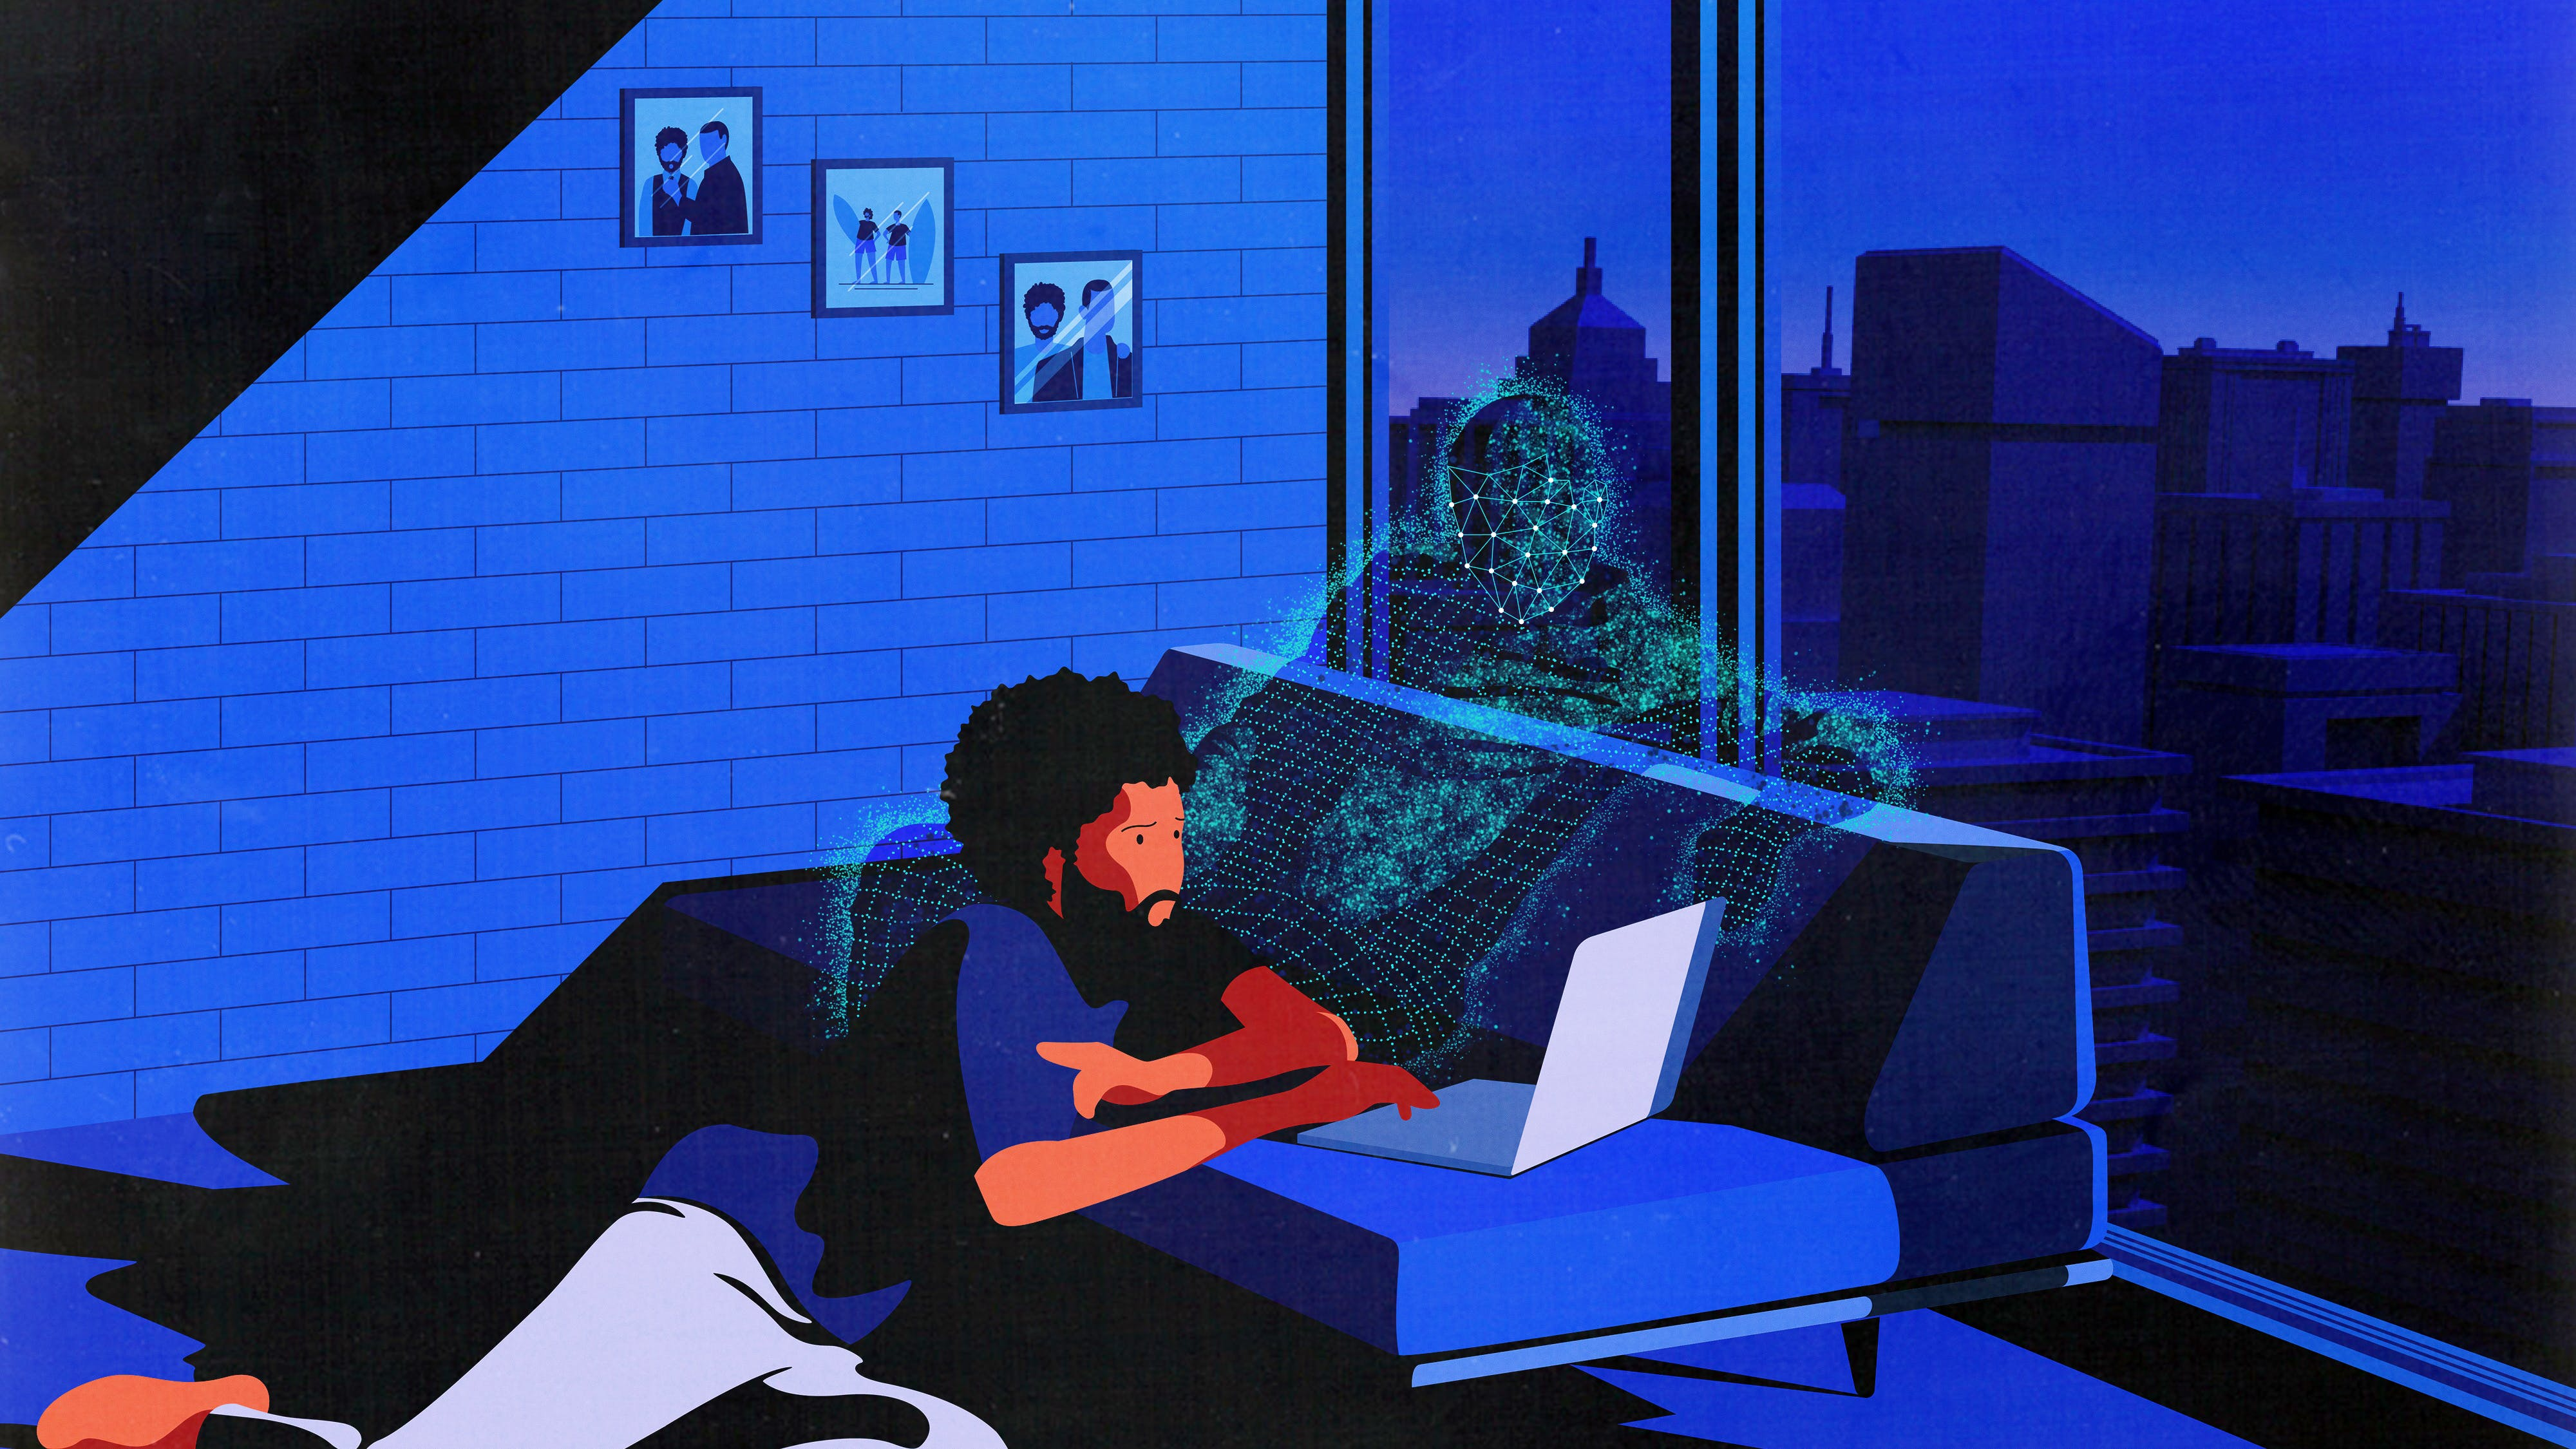 A person casually using a laptop; just behind, a ghostly hologram reclines, as if in wait.